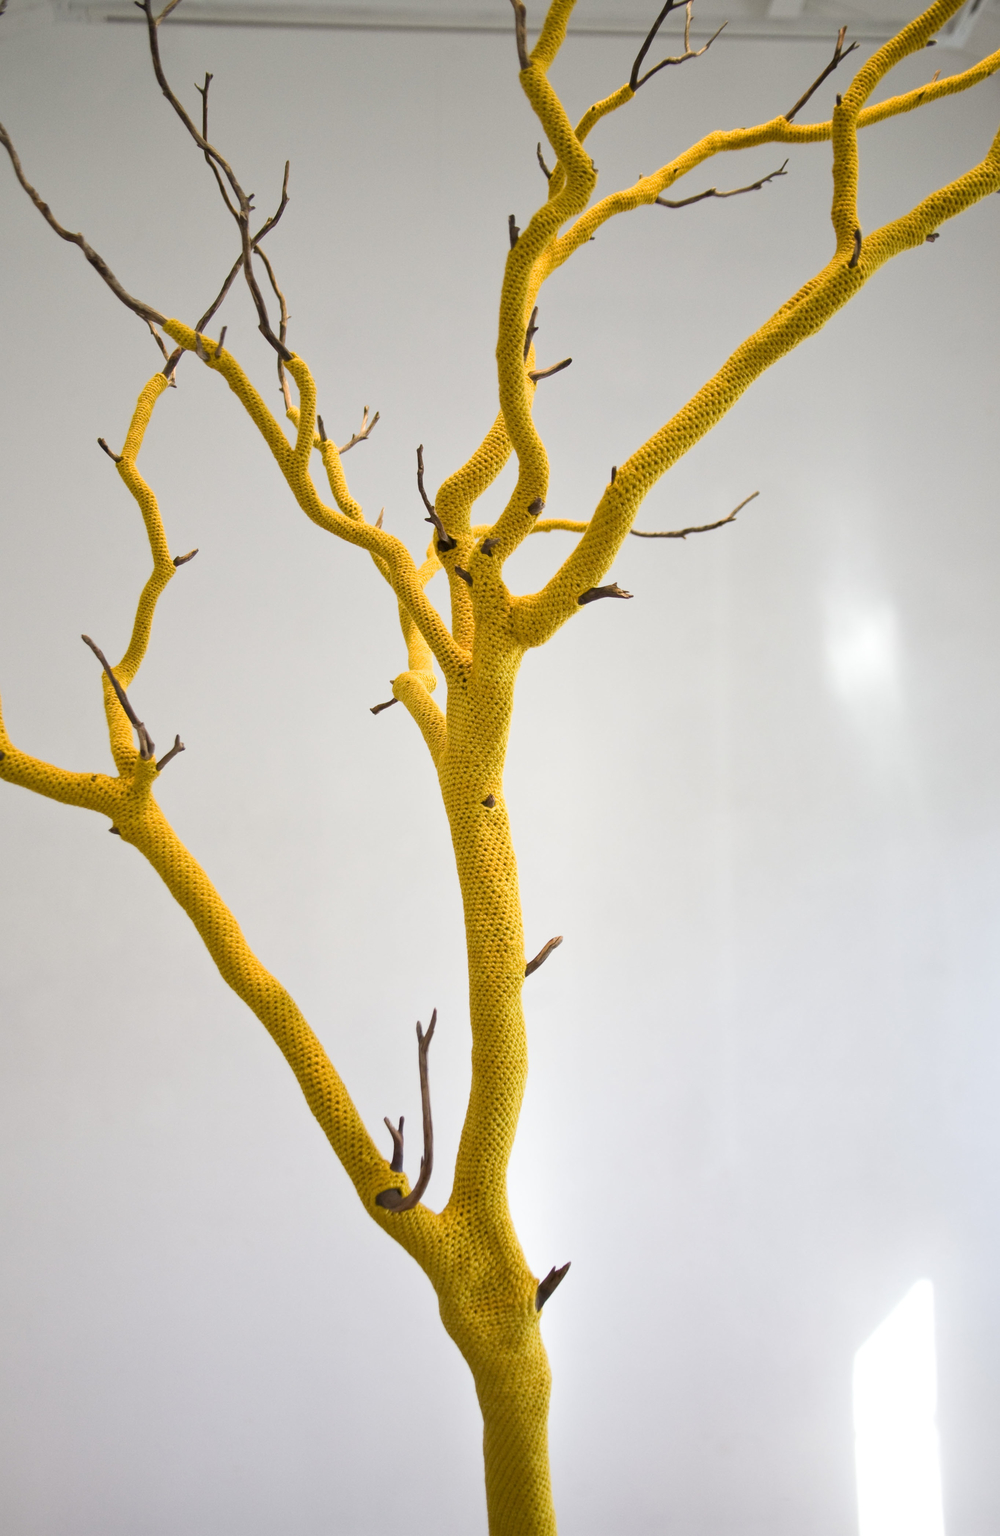 Untitled (standing tree) (detail), 2014